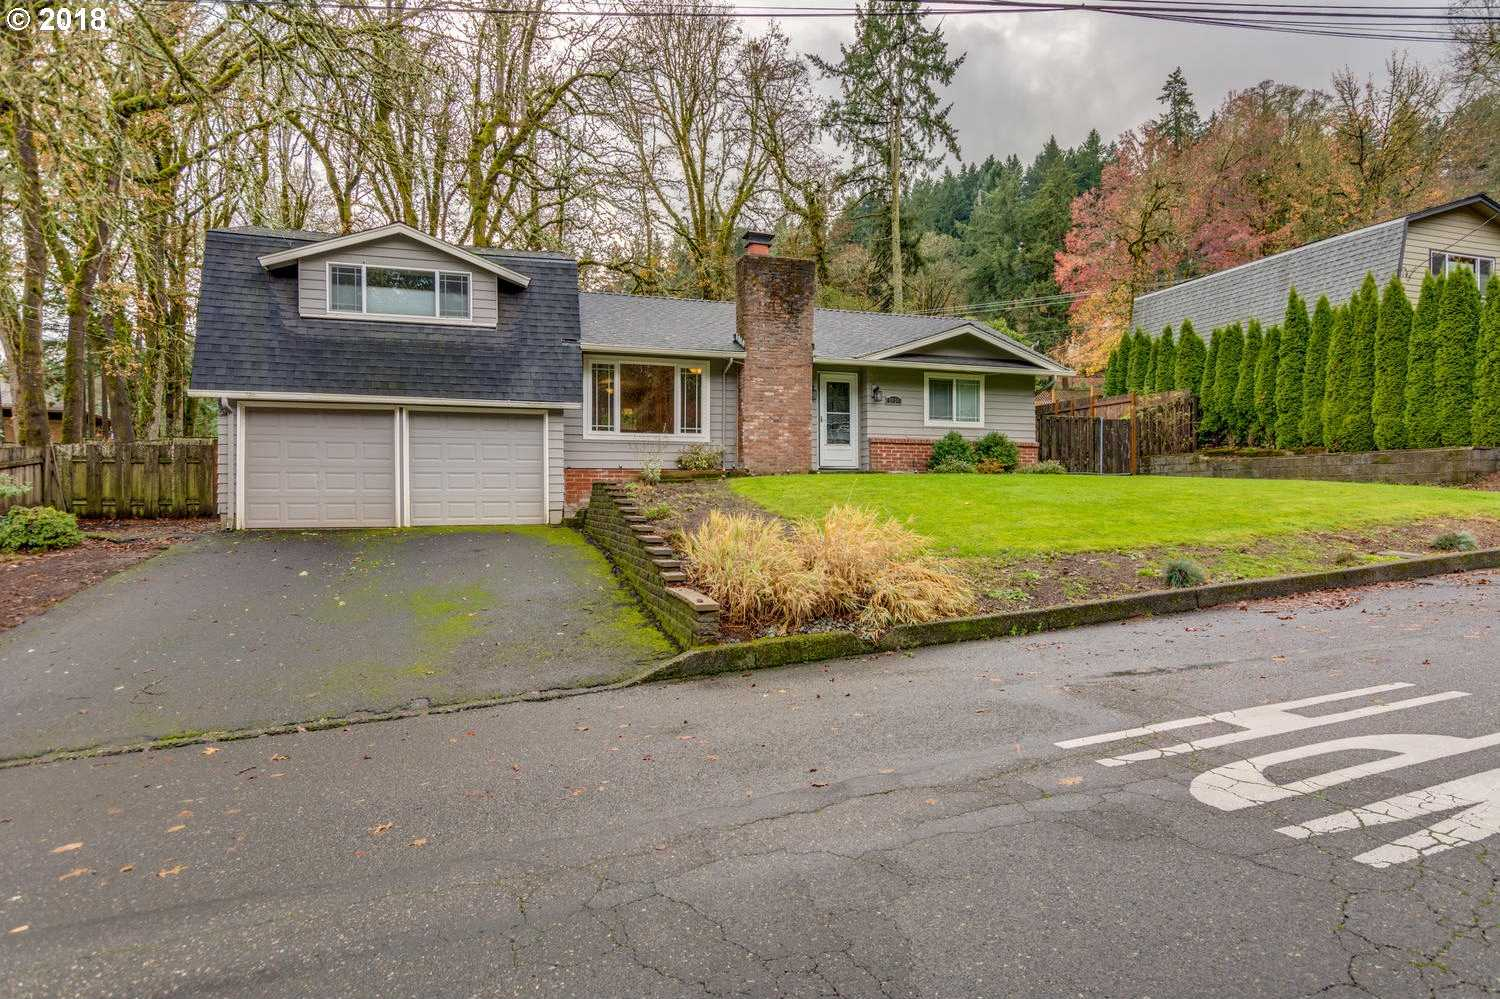 $419,500 - 3Br/2Ba -  for Sale in West Linn